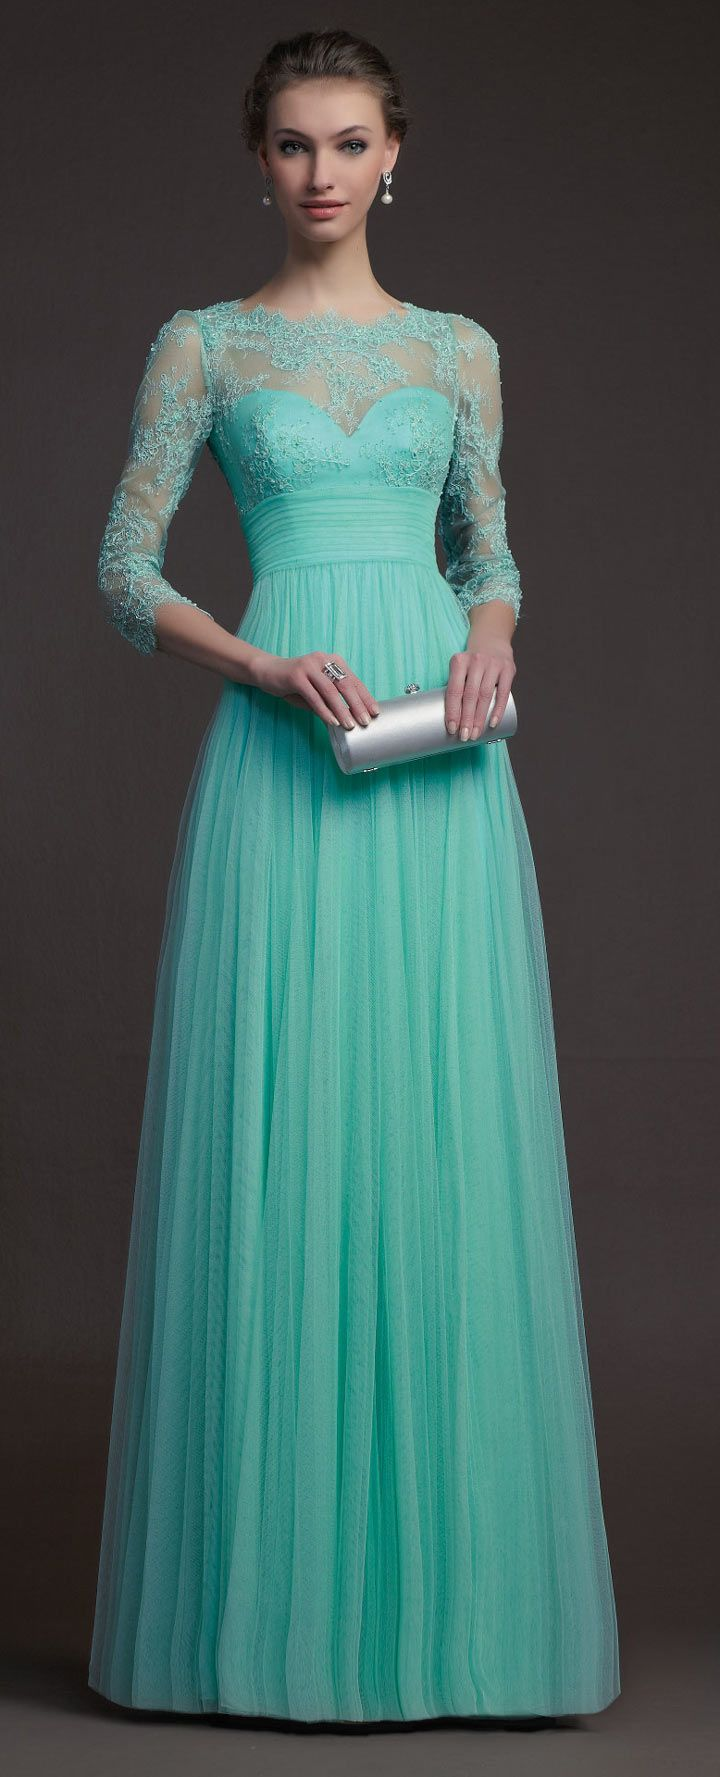 69 best Mother of the Bride Dresses images on Pinterest | Formal ...